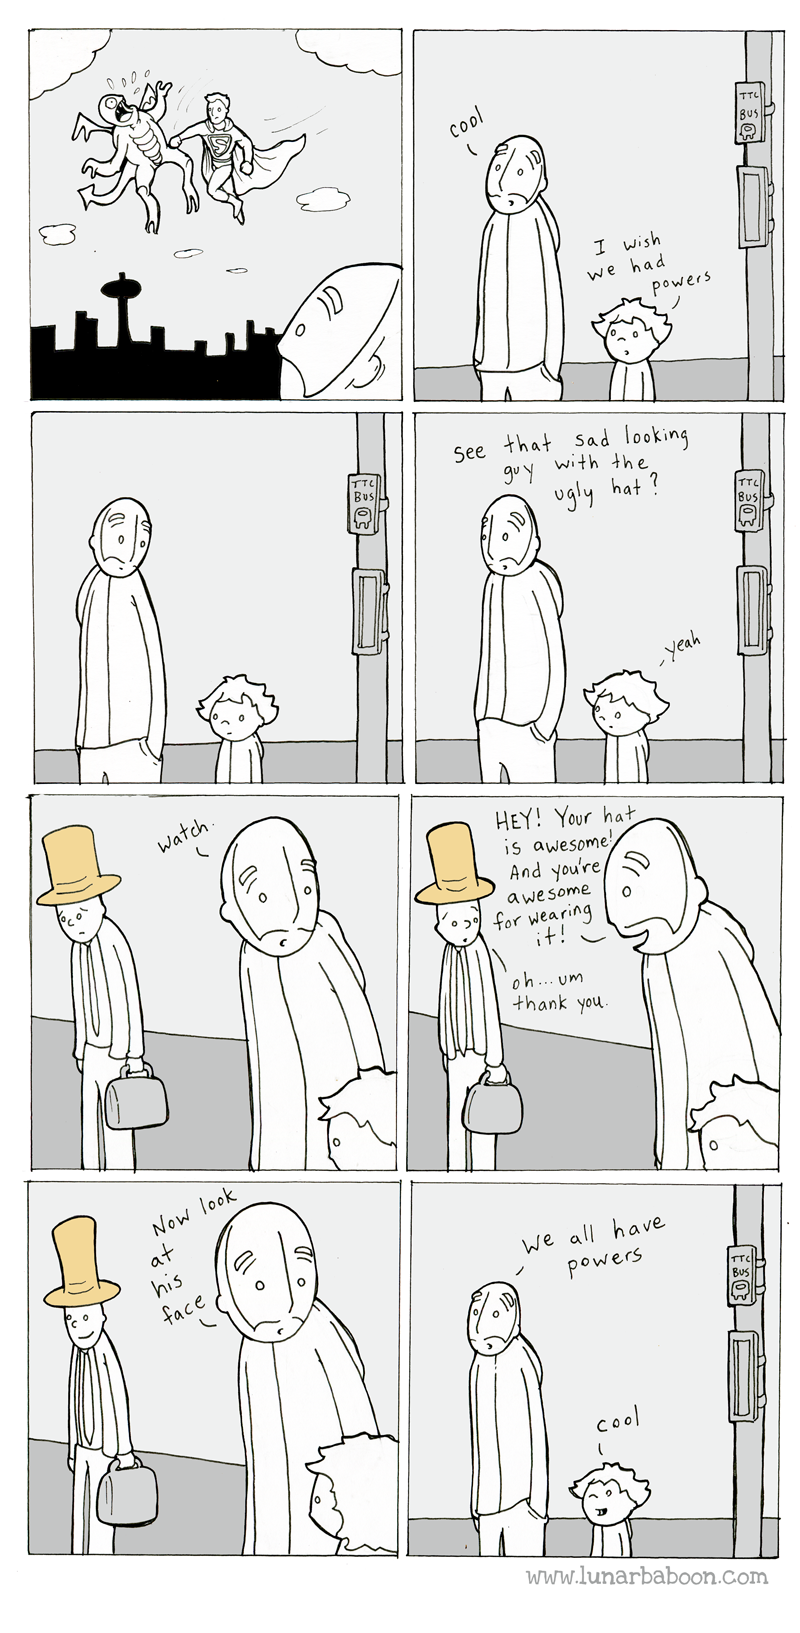 funny comics, lol, superheroes, powers, we all have powers